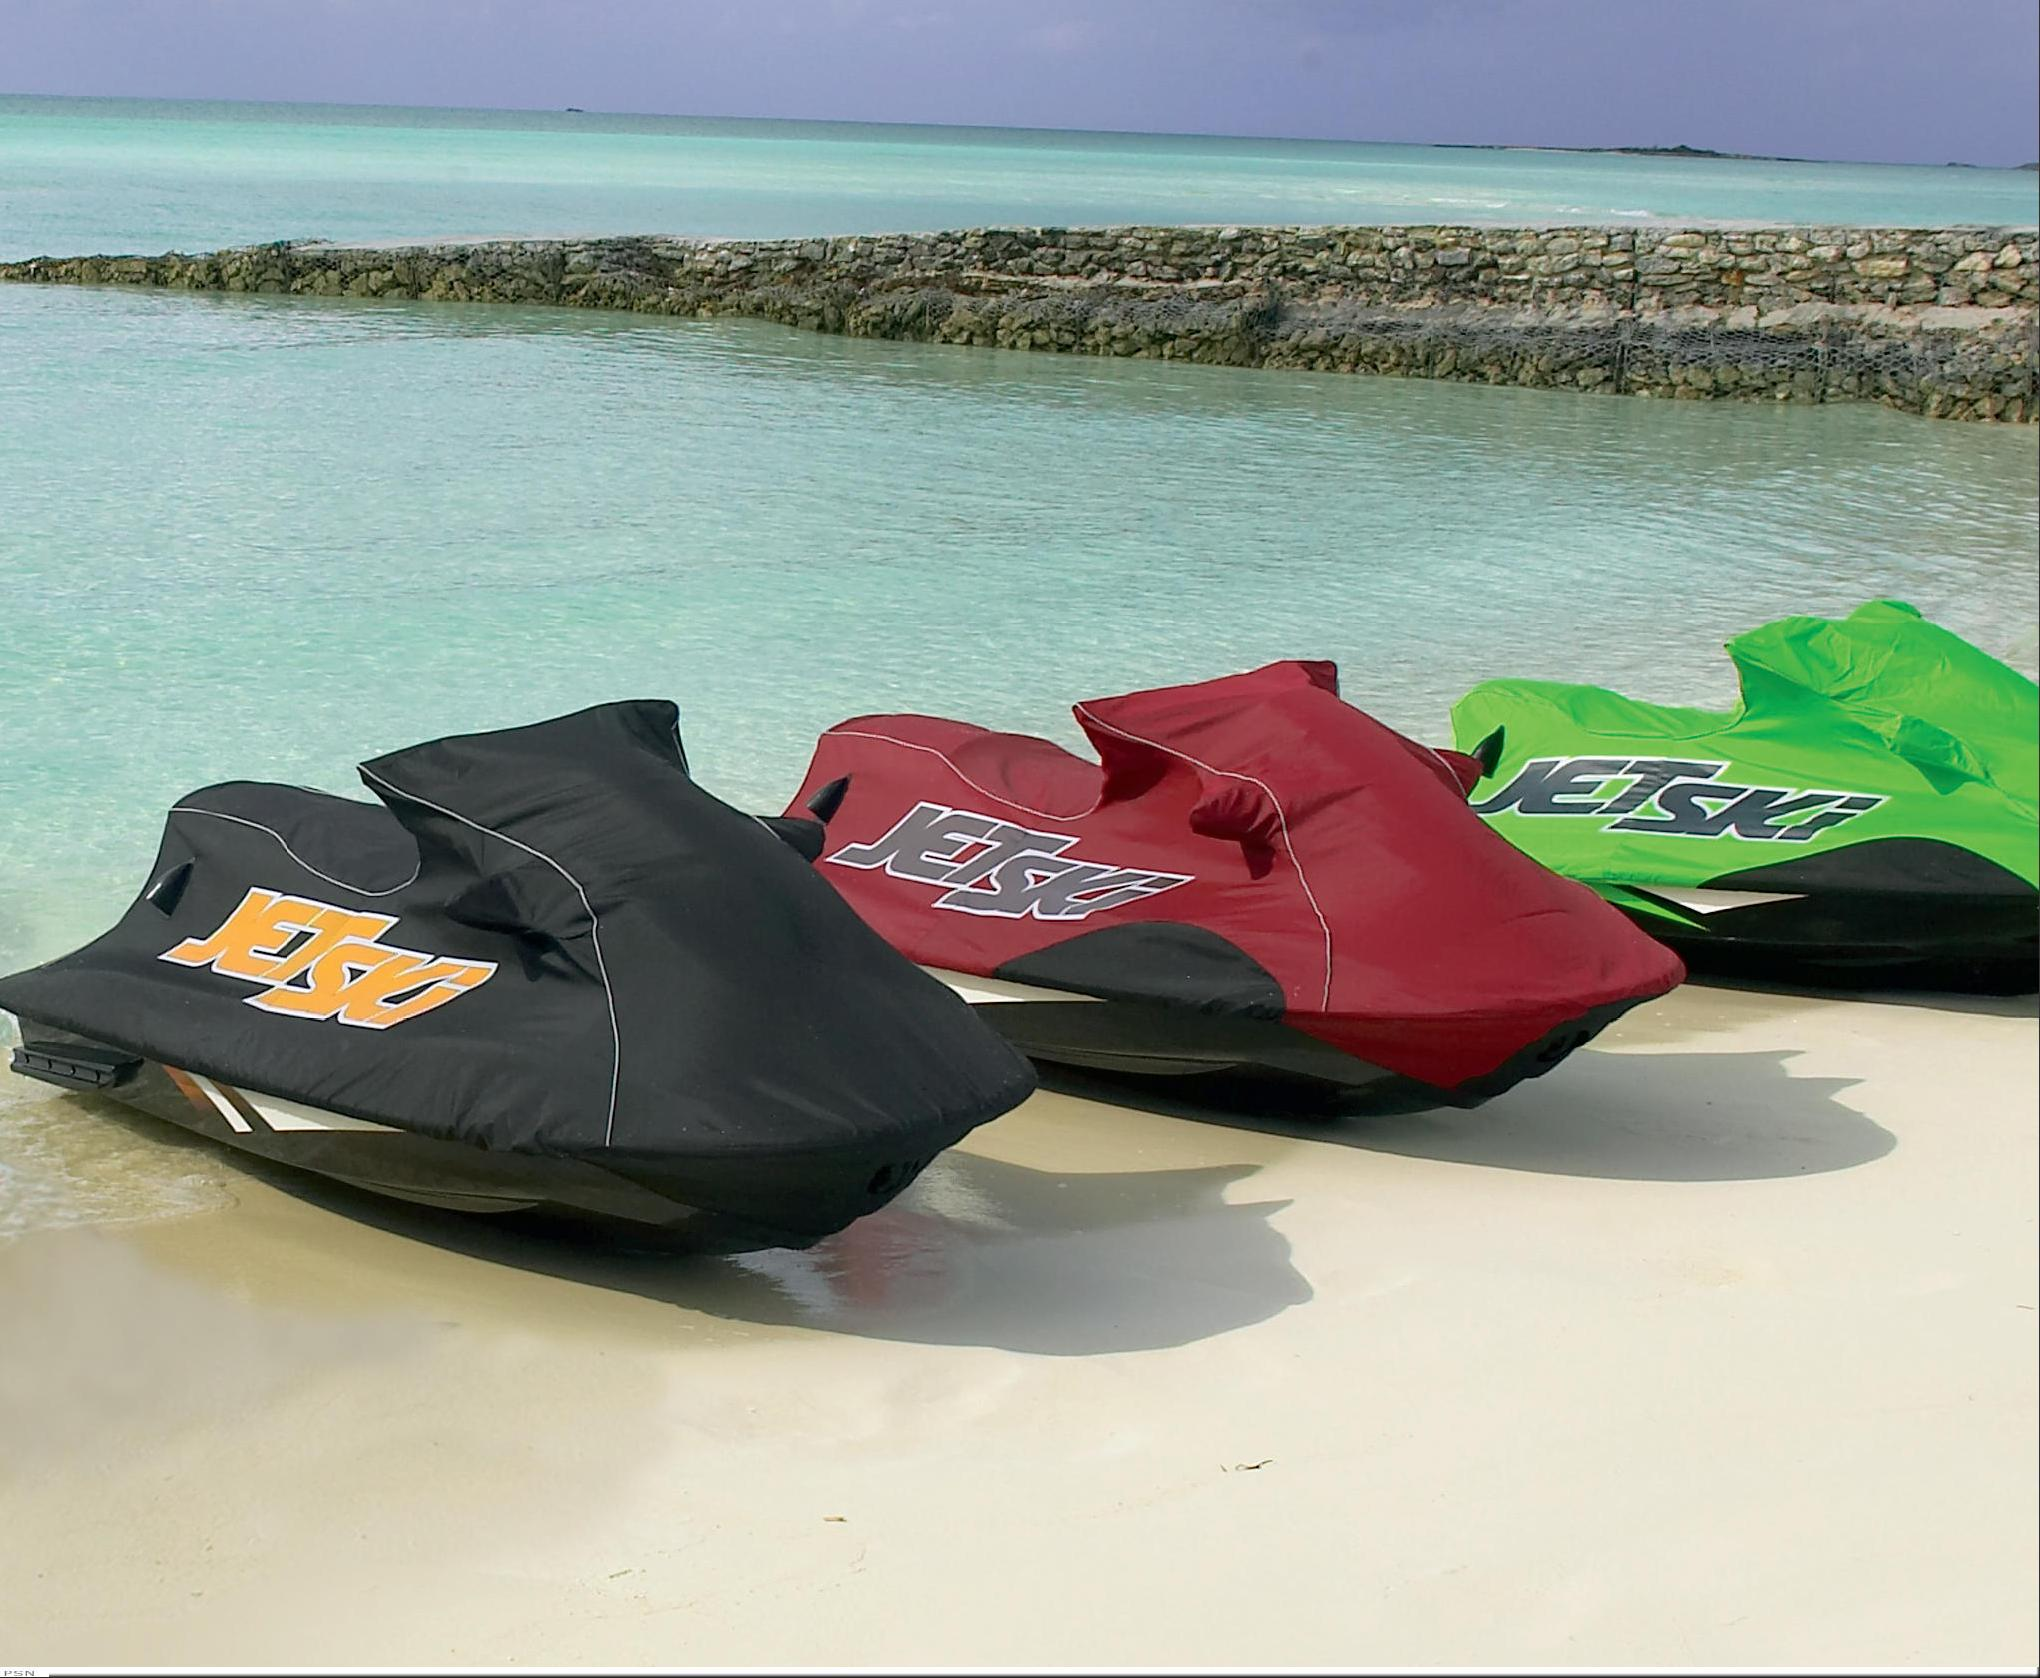 vacu-hold jet ski covers from kawasaki full-line accessories 2007